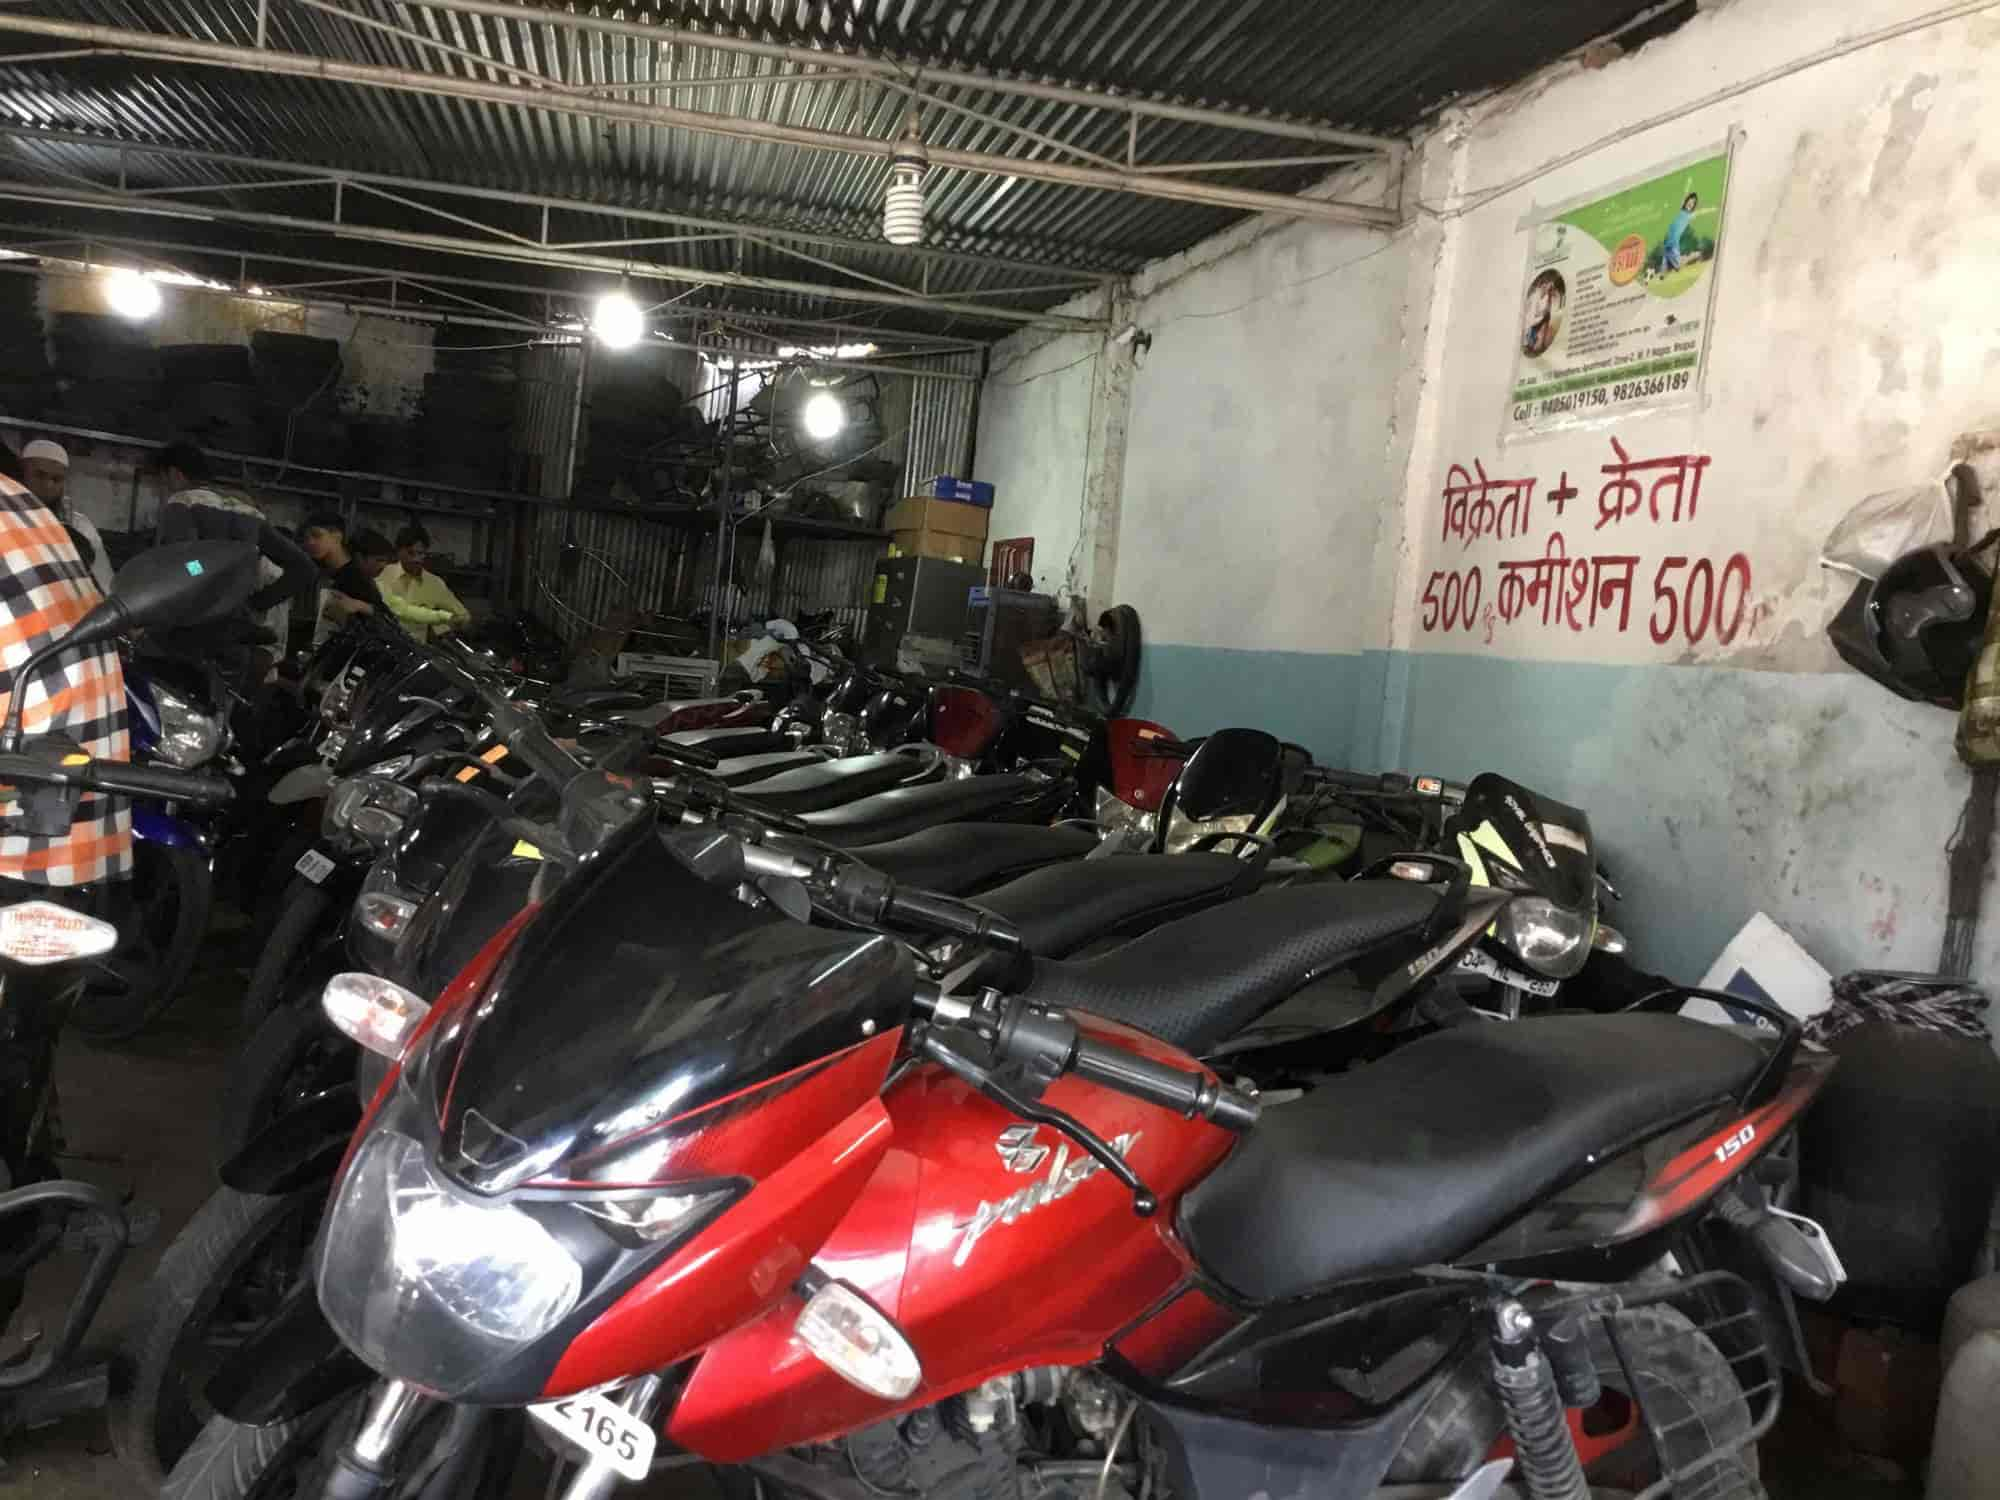 New City Auto Deal s Raisen Road Bhopal &